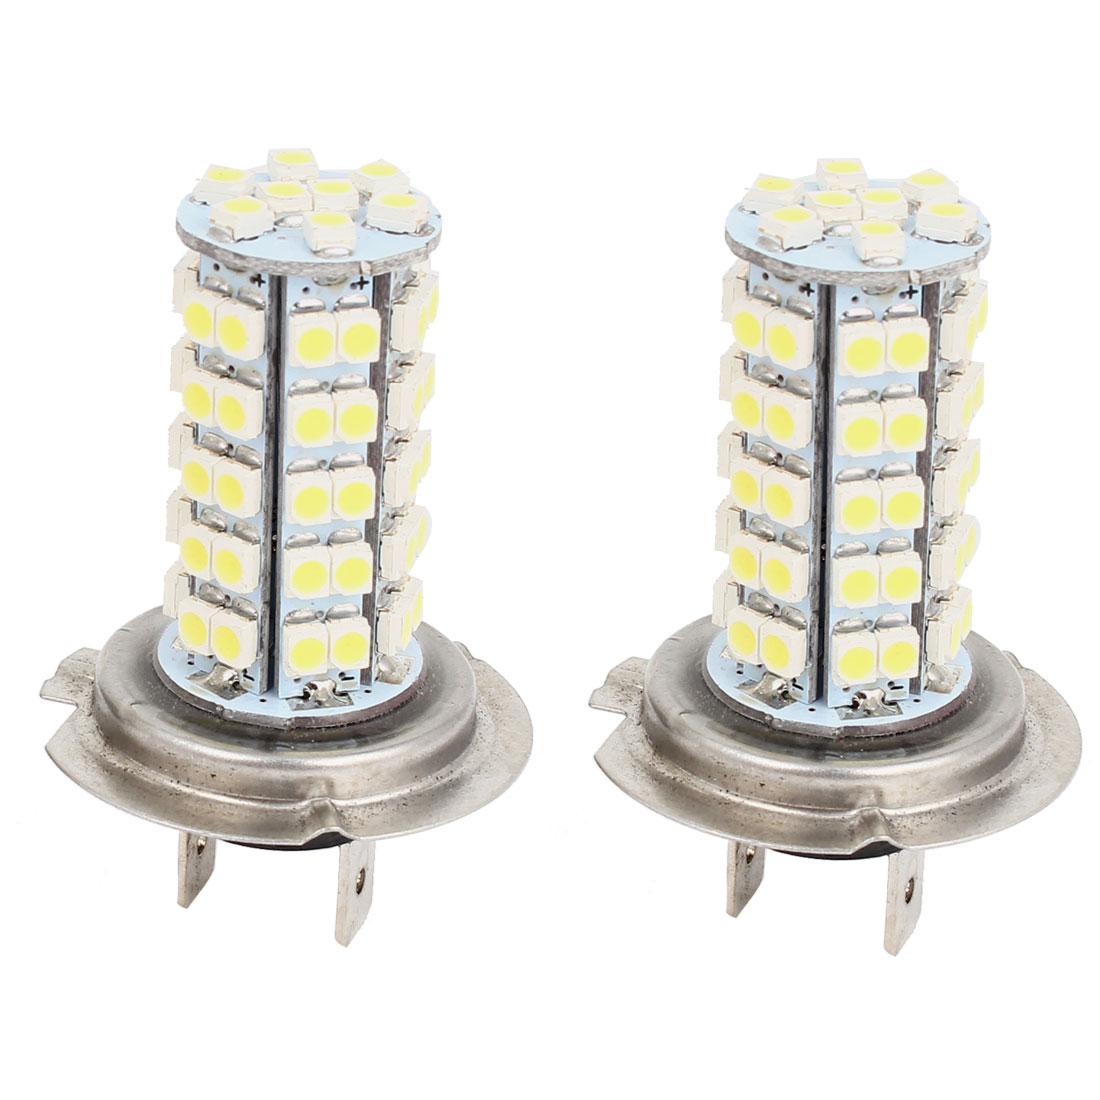 Car H7 68 LED 3128 LED Bulb Headlight Fog Light Bulb DC12V White 2 Pcs